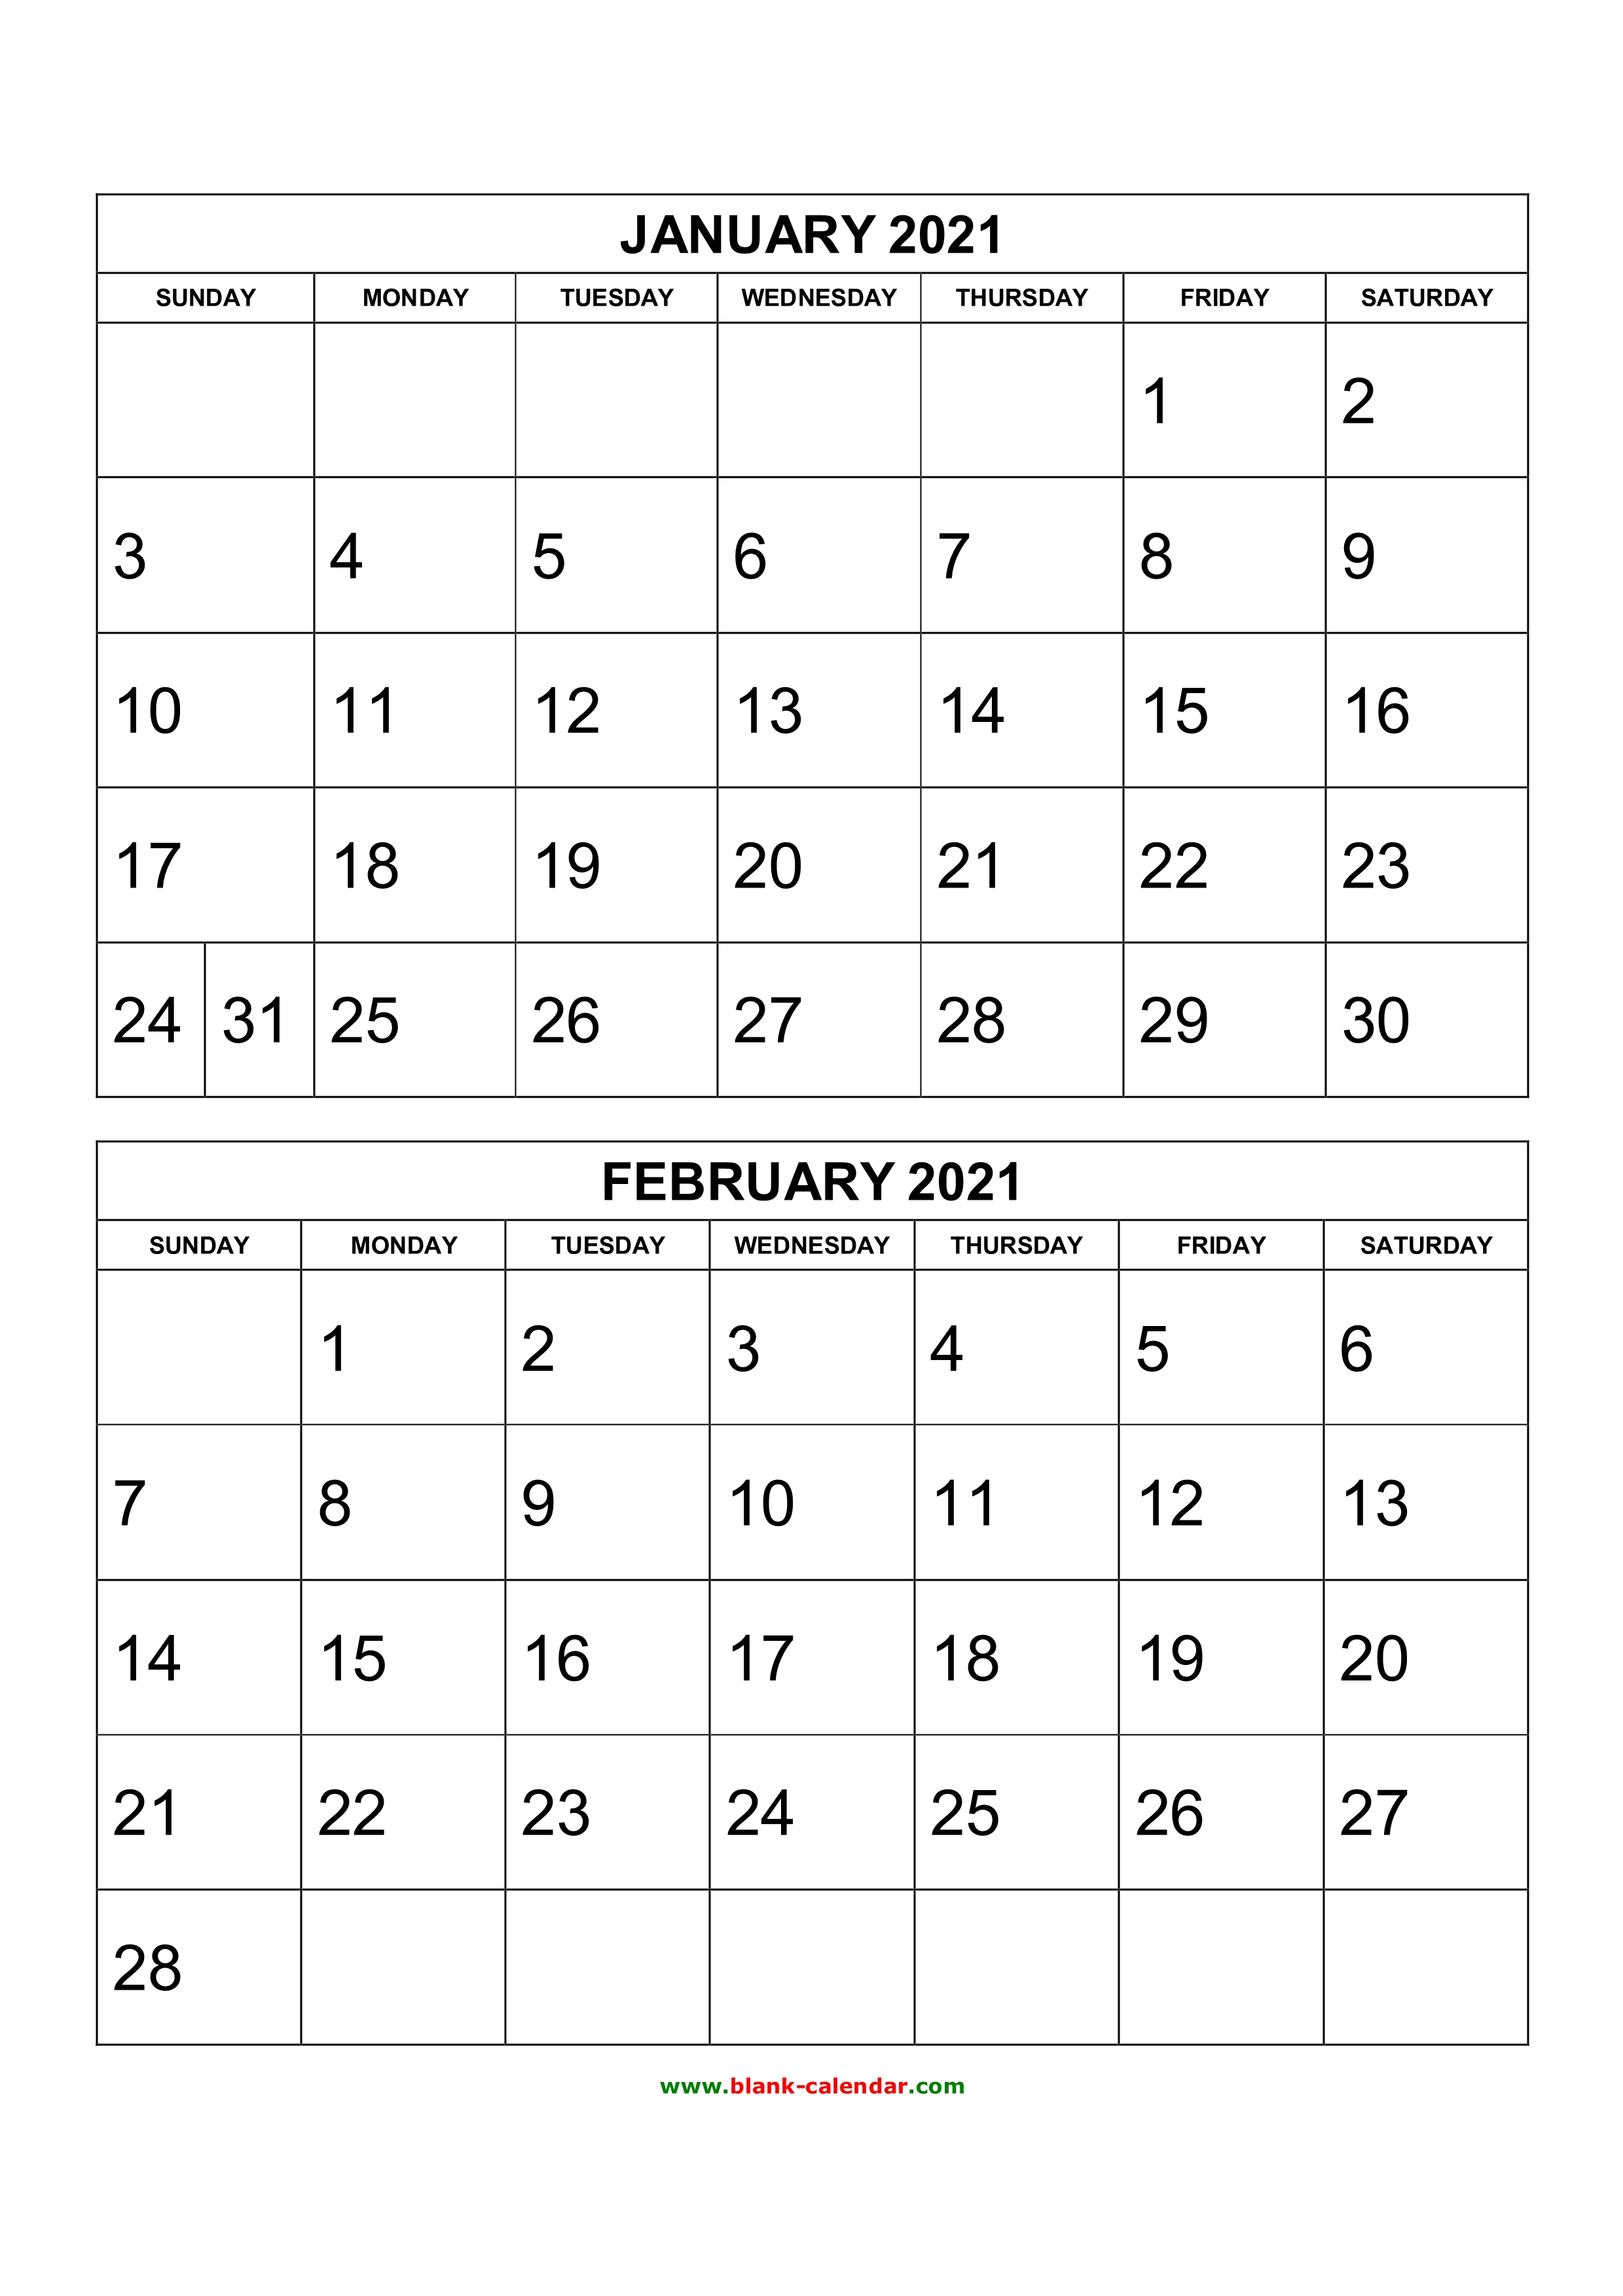 By sally wiener grotta 25 march 2021 we tested the best photo calendars services so that you can pick the righ. Free Download Printable Calendar 2021, 2 months per page ...